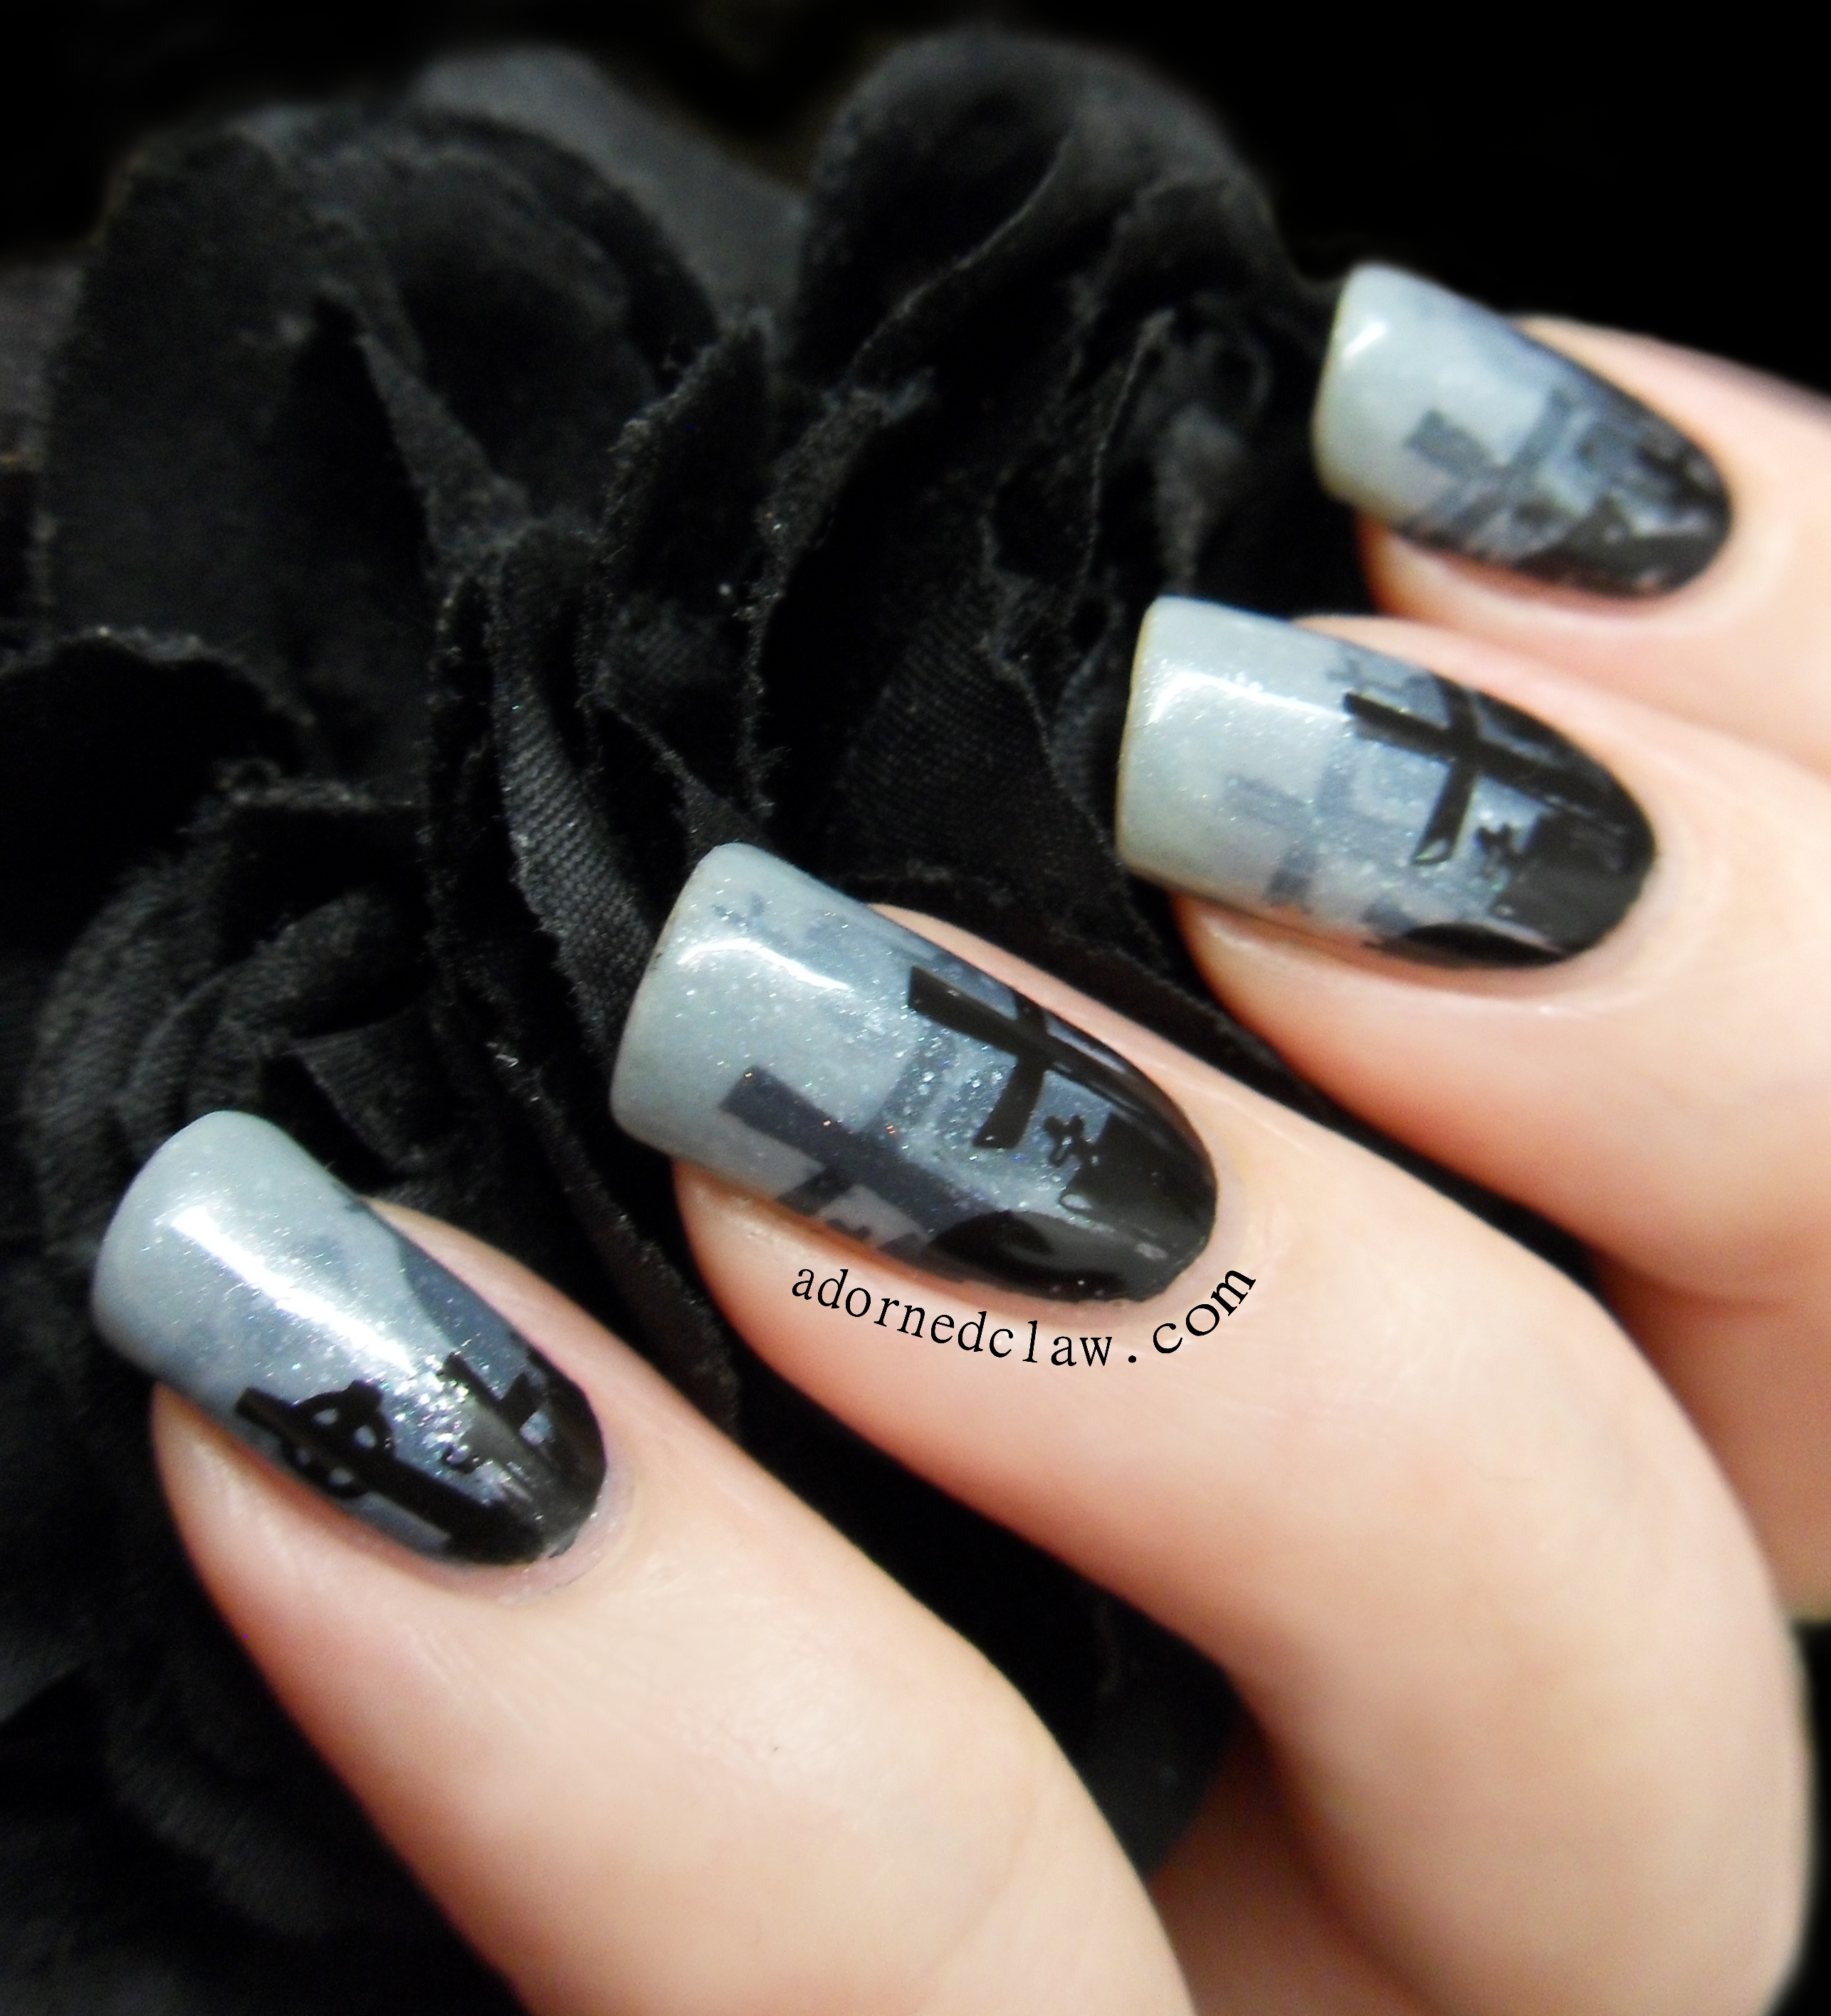 Misty Graveyard Halloween Nail Art | The Adorned Claw